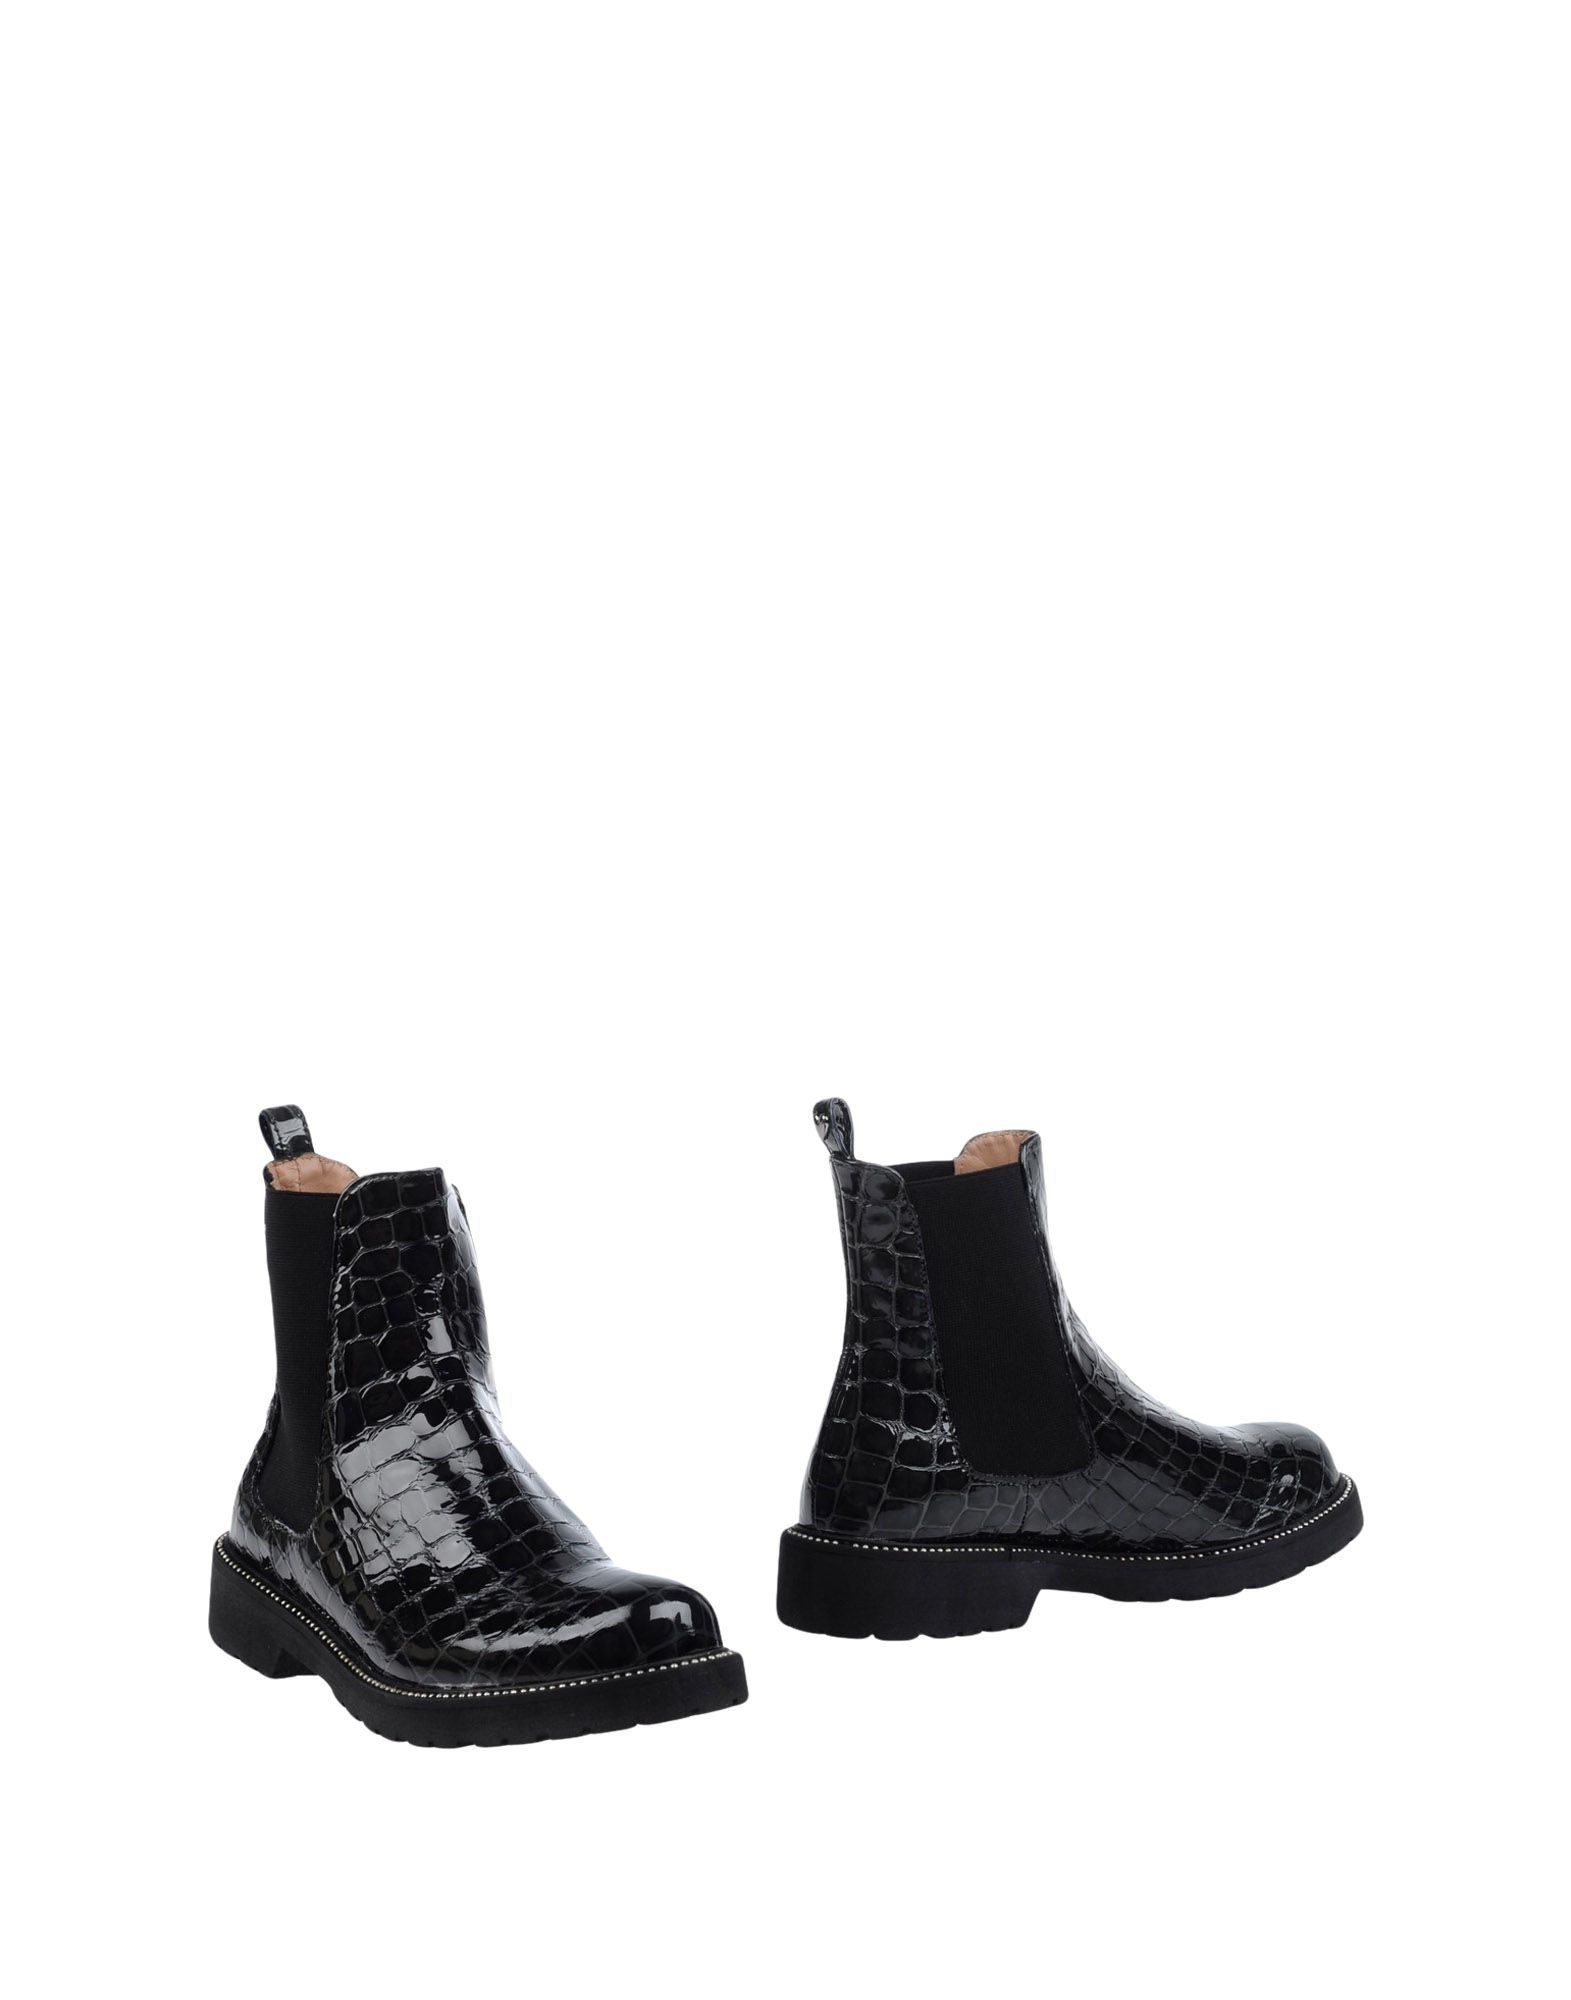 Chelsea Boots Twin-Set Simona Barbieri Donna - 11280586AT